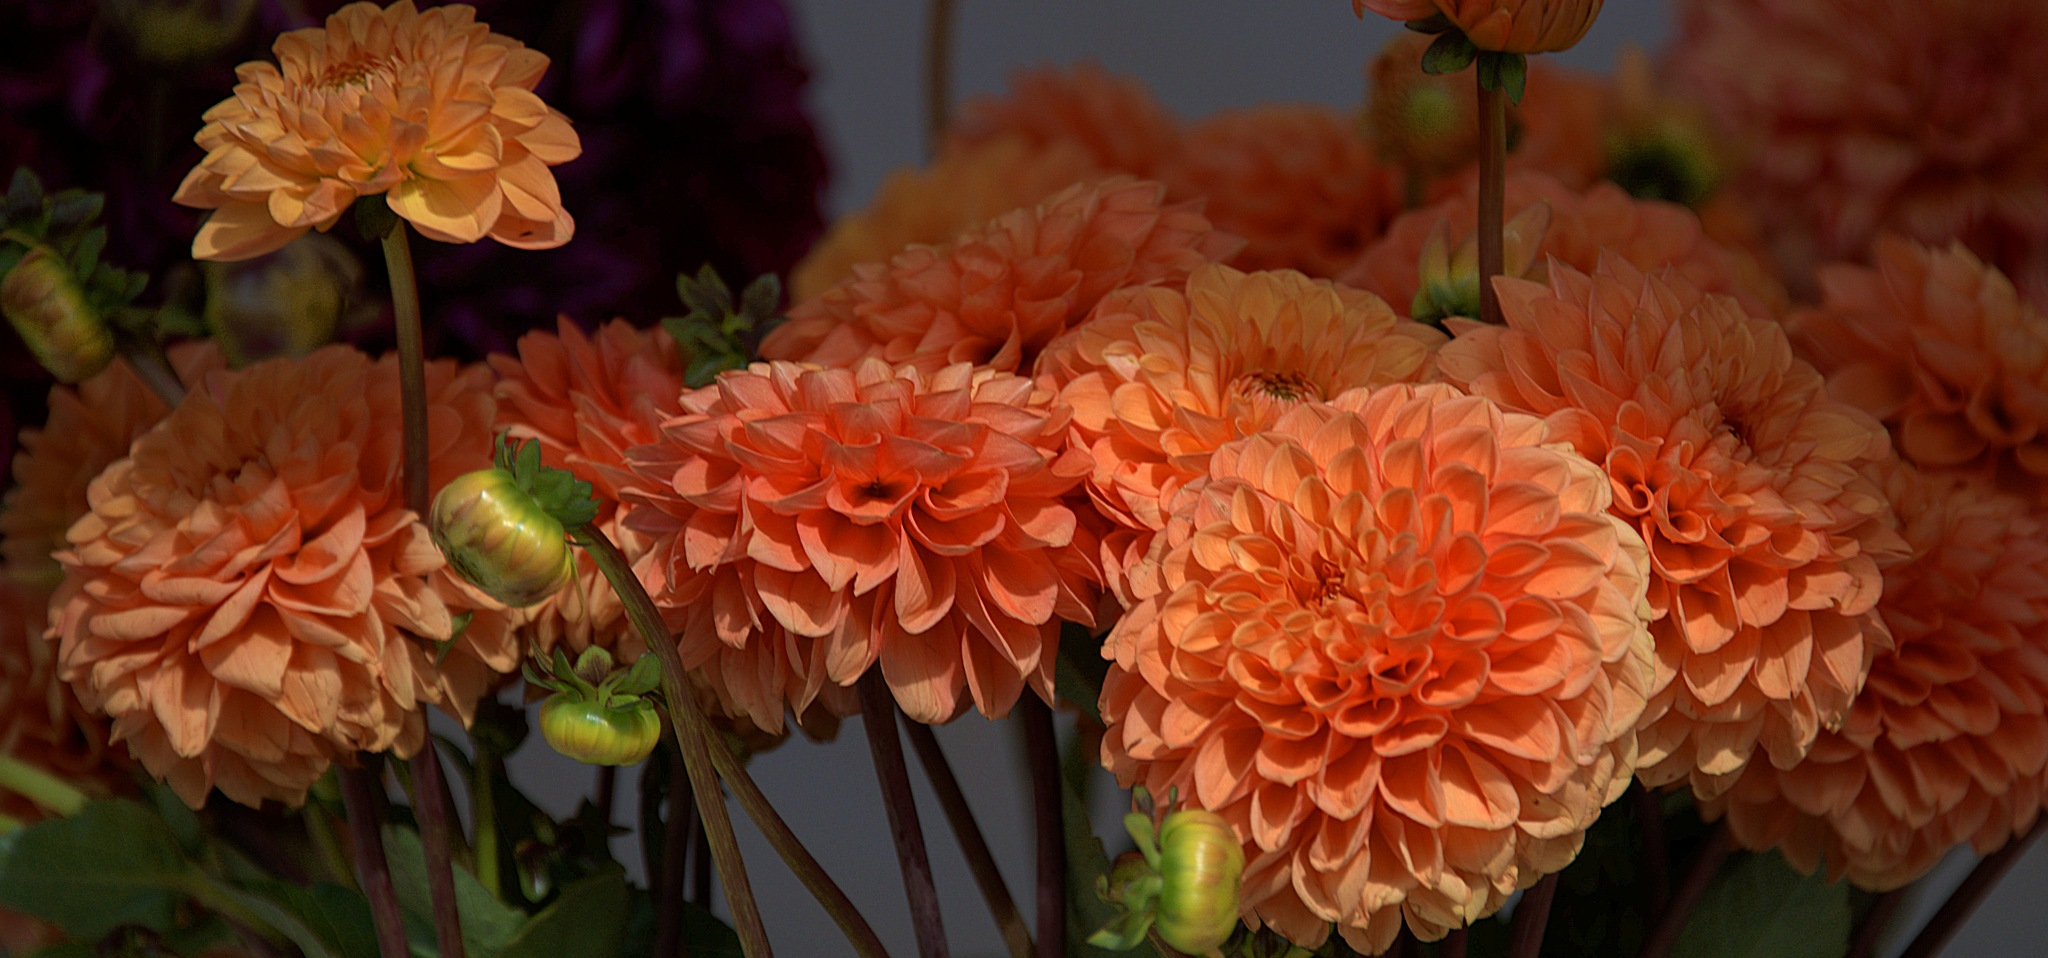 Orange Beauties  by pscottwong